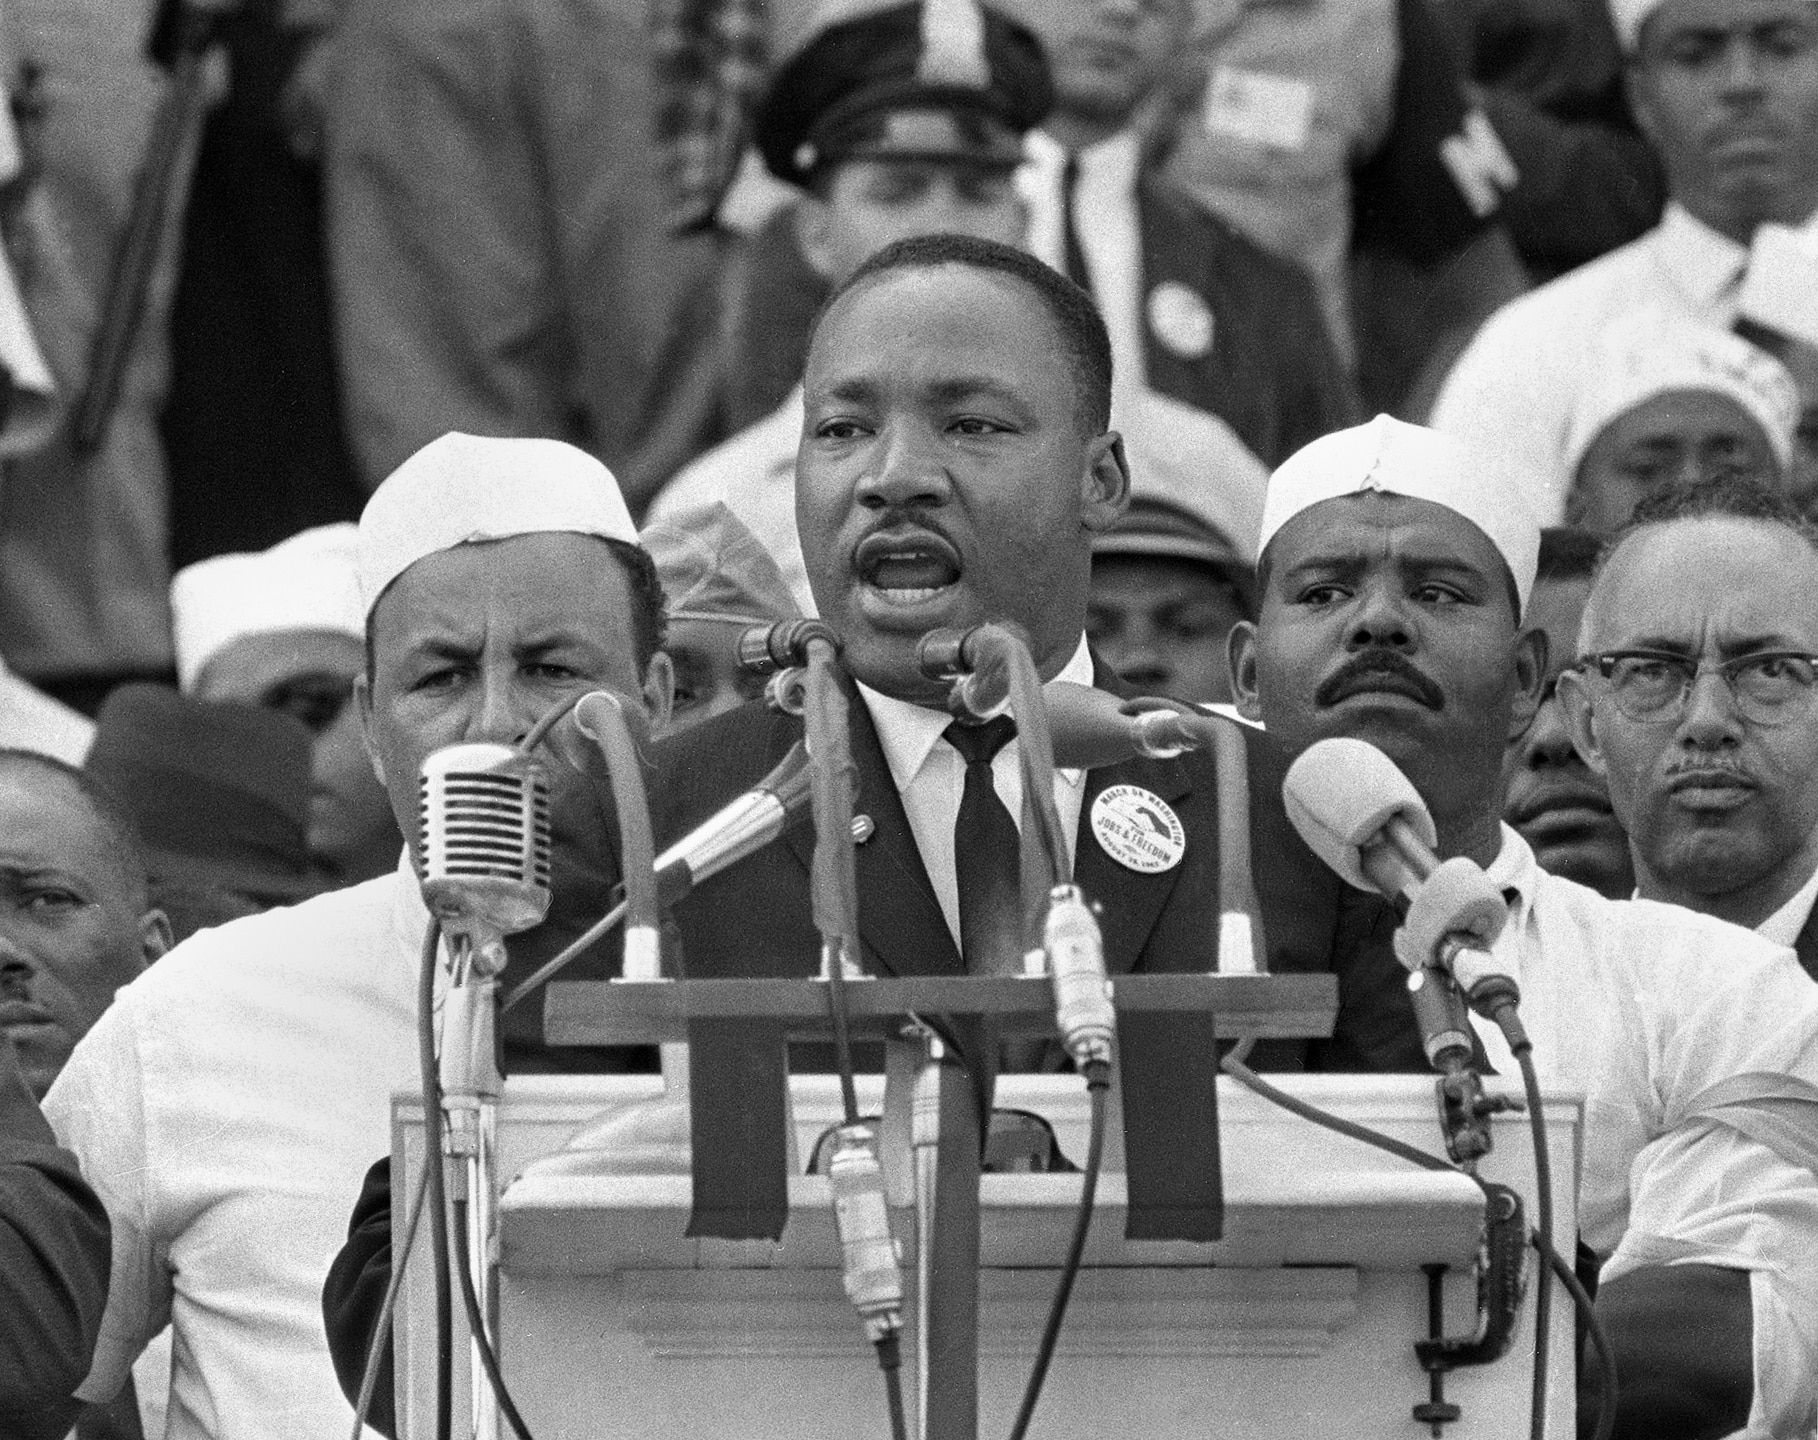 the life and legacy of martin luther king jr shareamerica